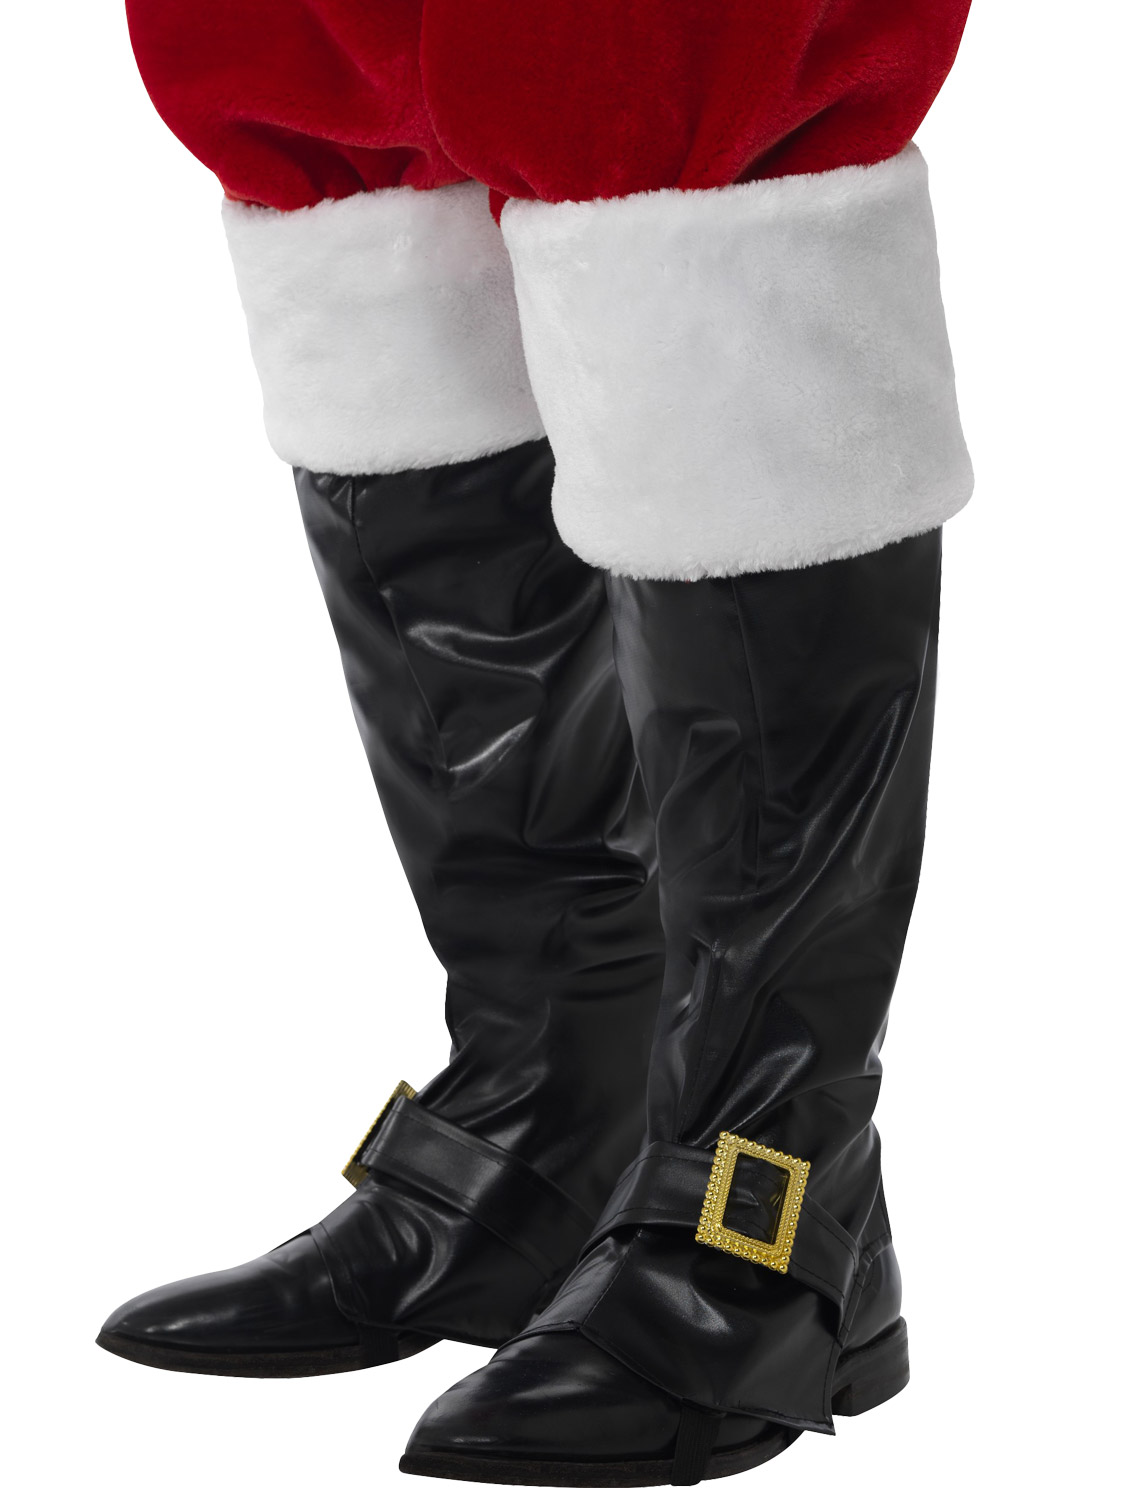 Adults deluxe santa claus boot covers mens father